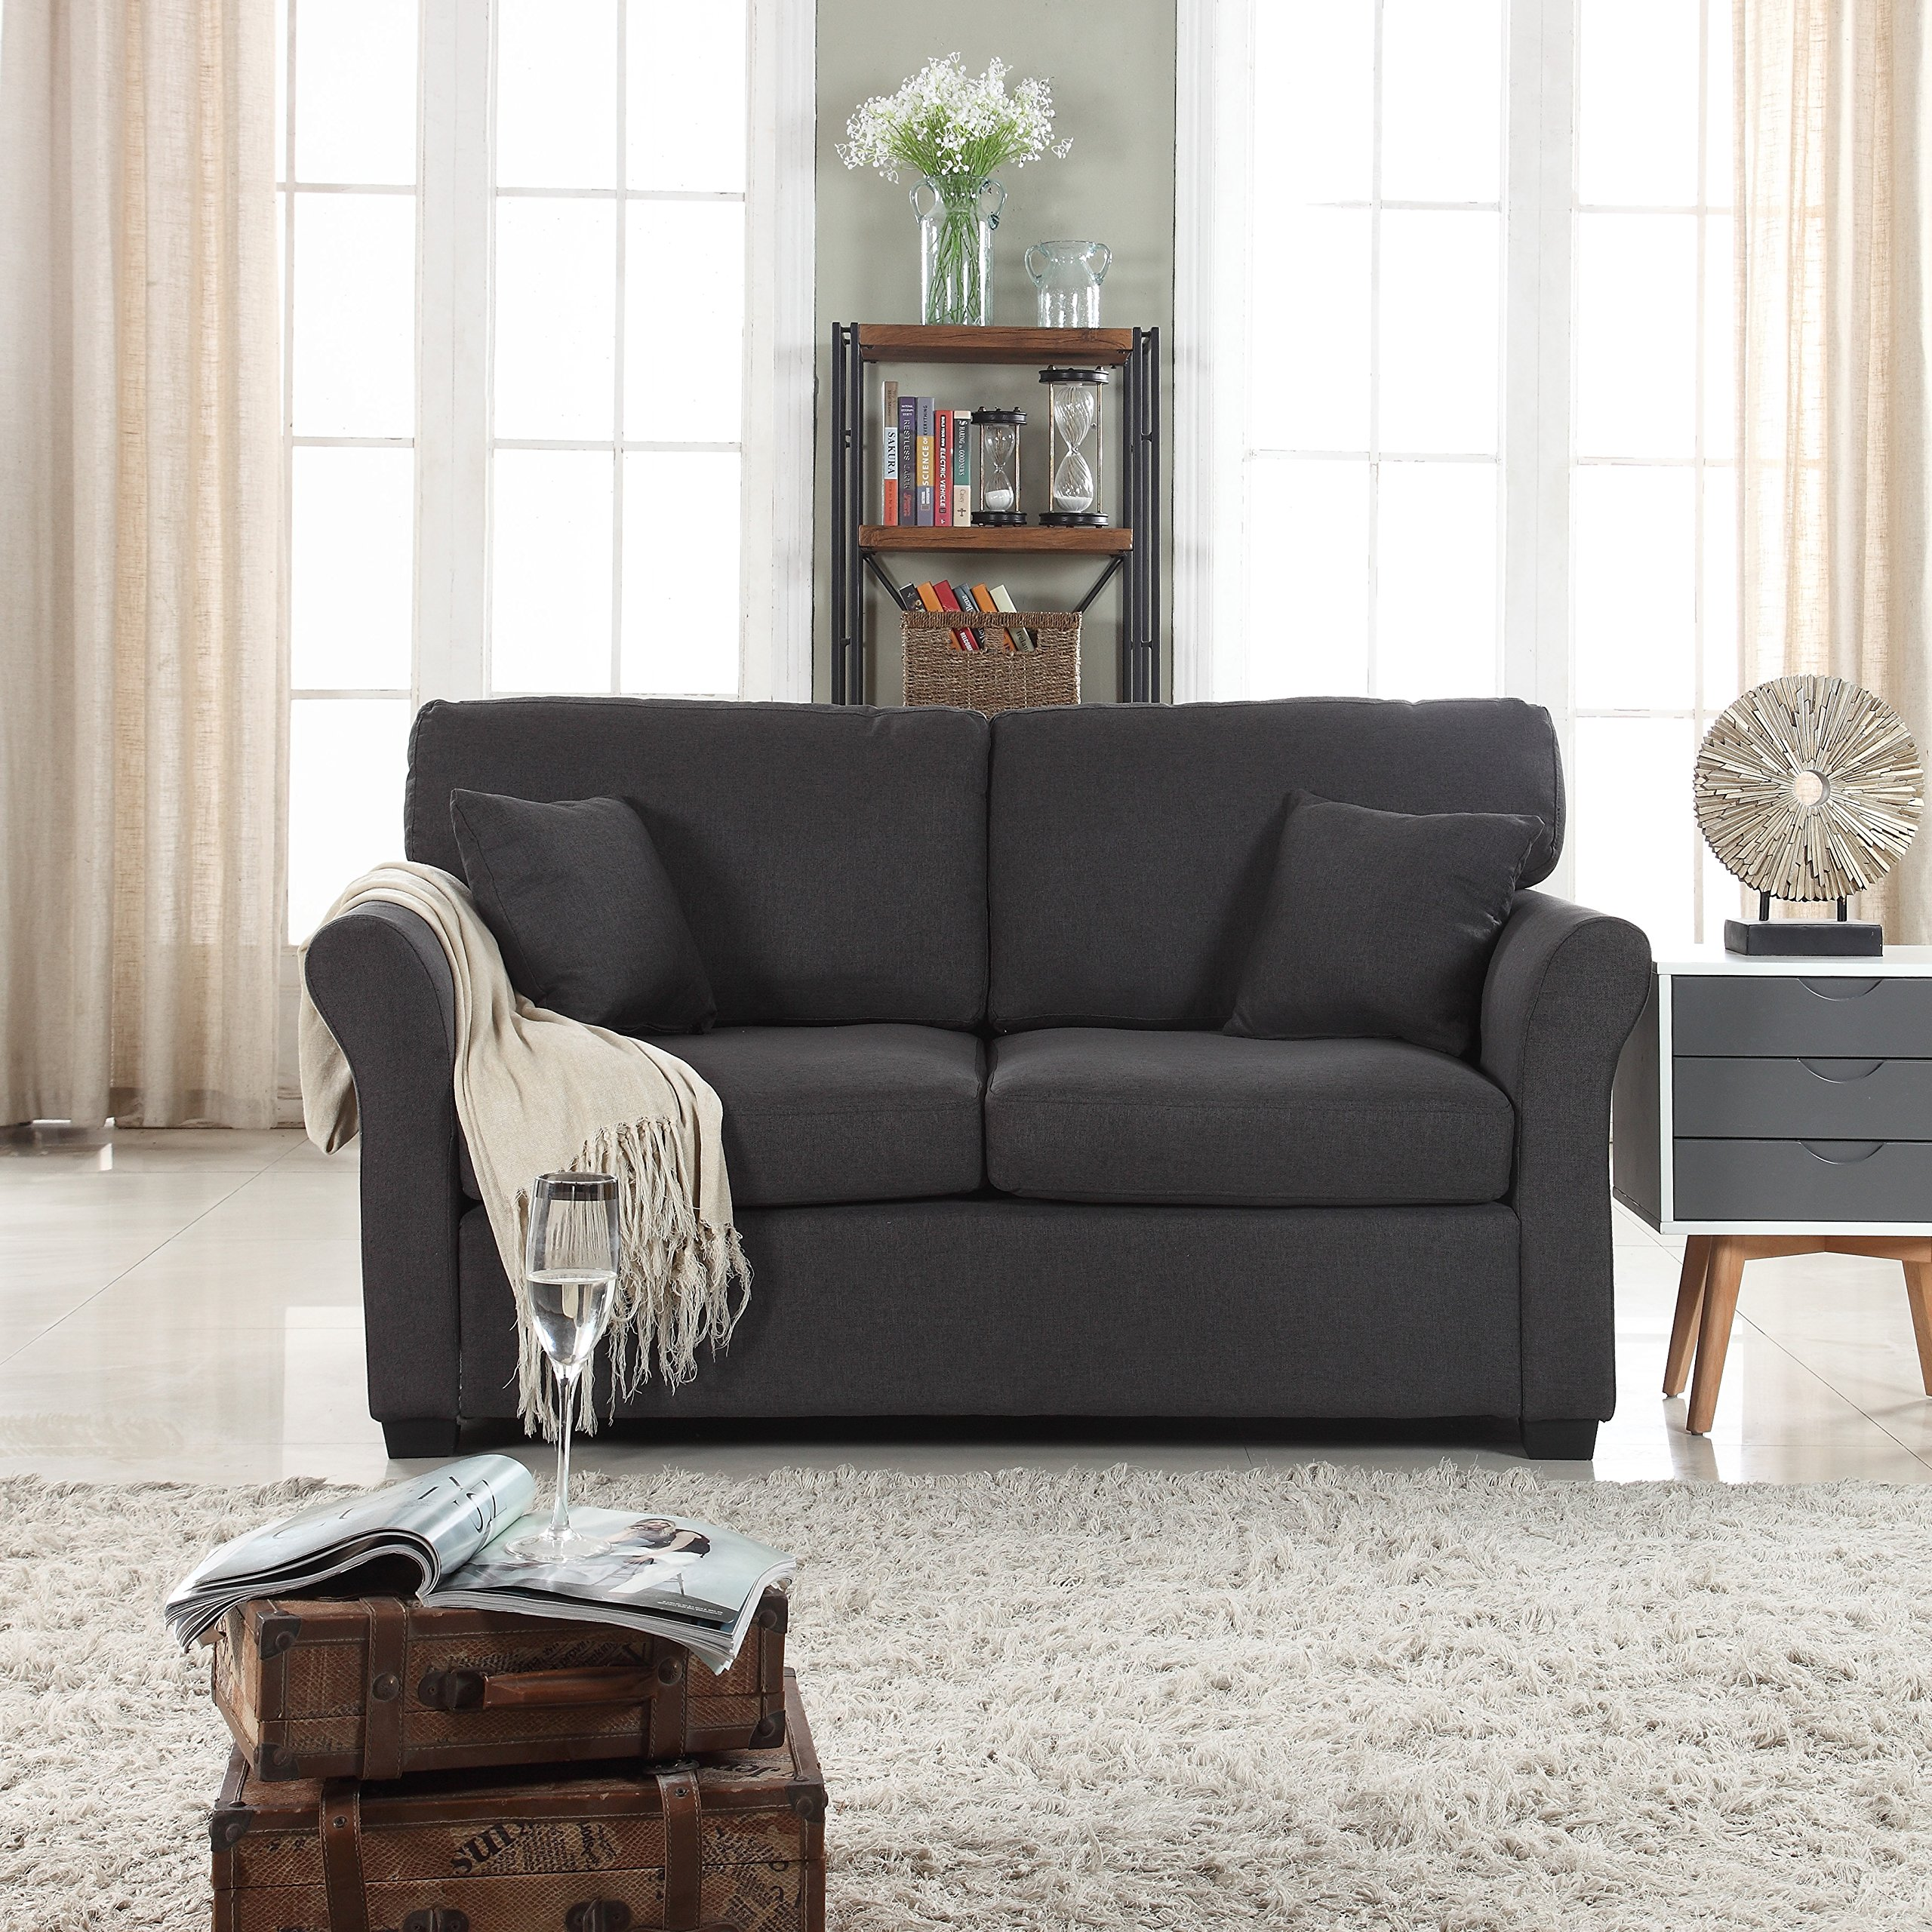 Classic and Traditional Ultra Comfortable Linen Fabric Loveseat – Living Room Fabric Couch